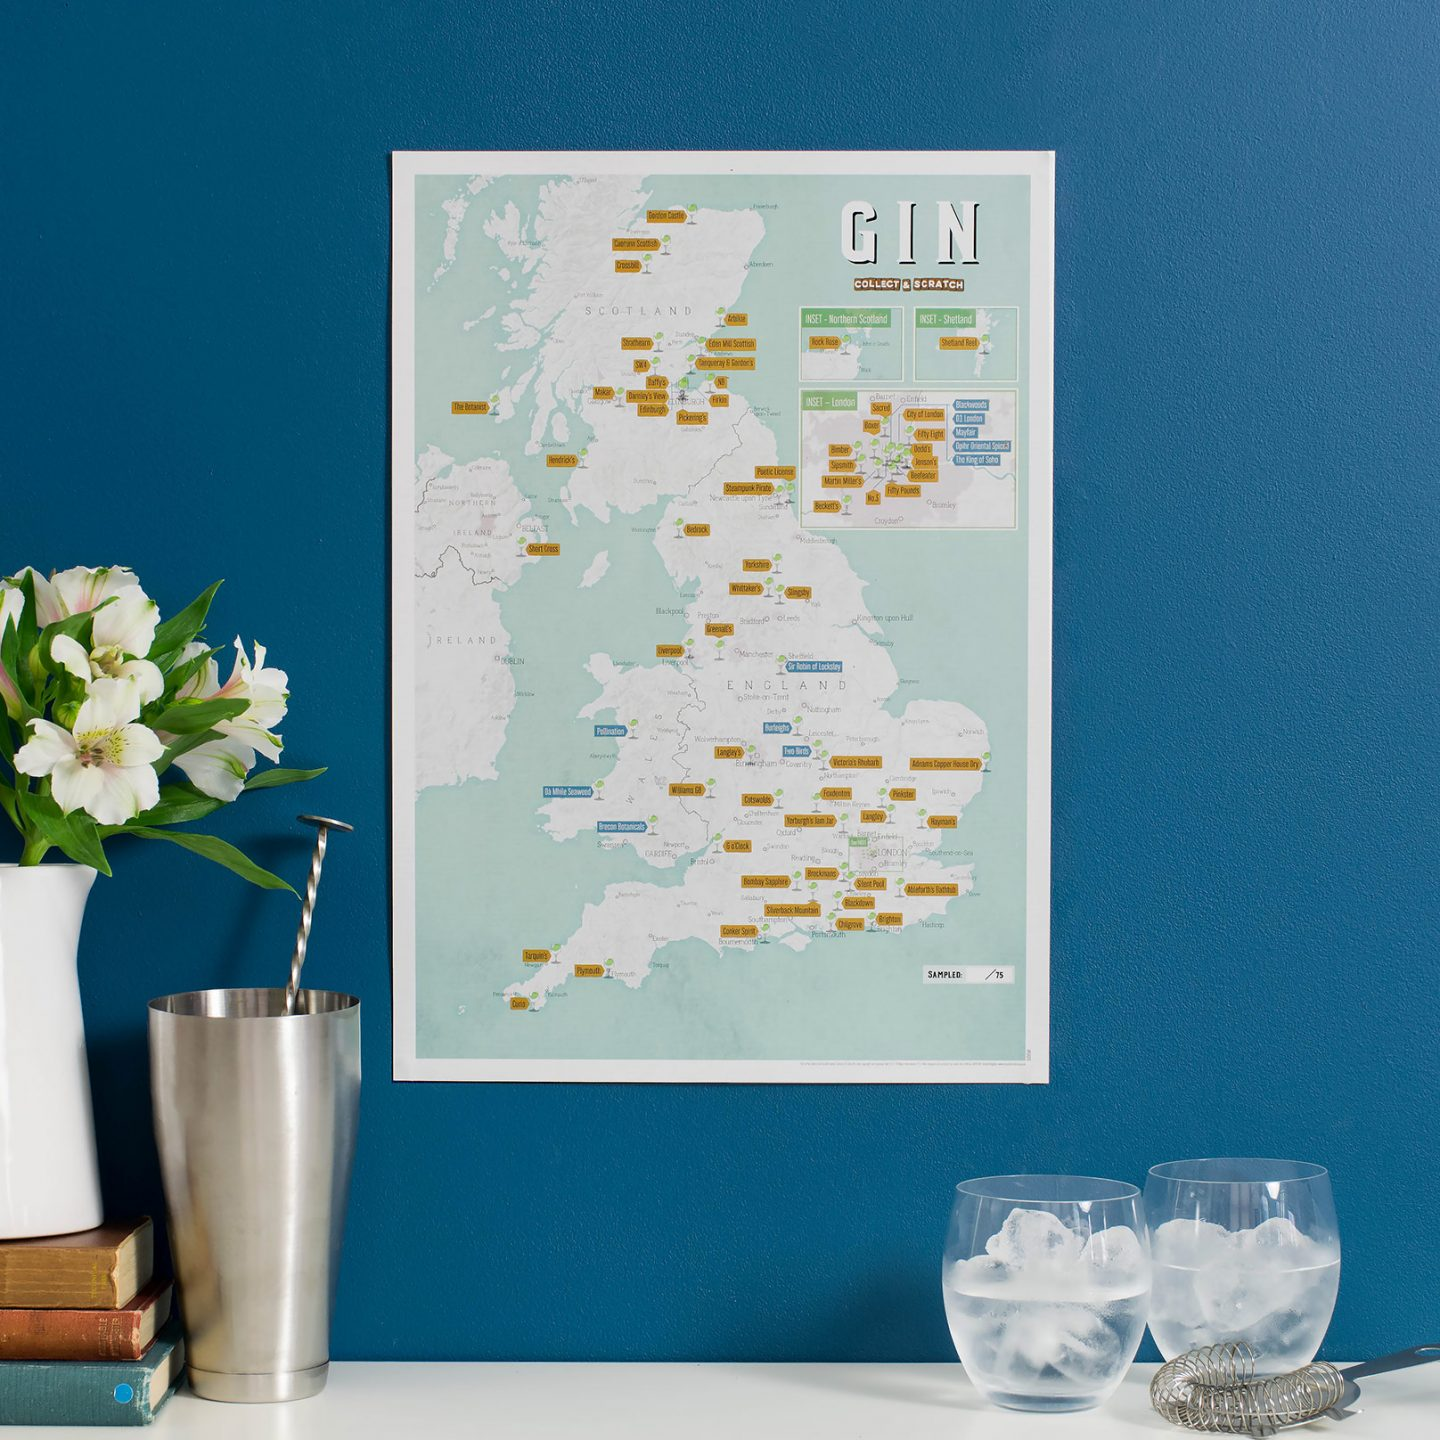 A map of the UK on a poster, with gin distilleries marked on it. The map is against a blue wall with some flowers next to them, and 2 glasses of gin and tonic with ice